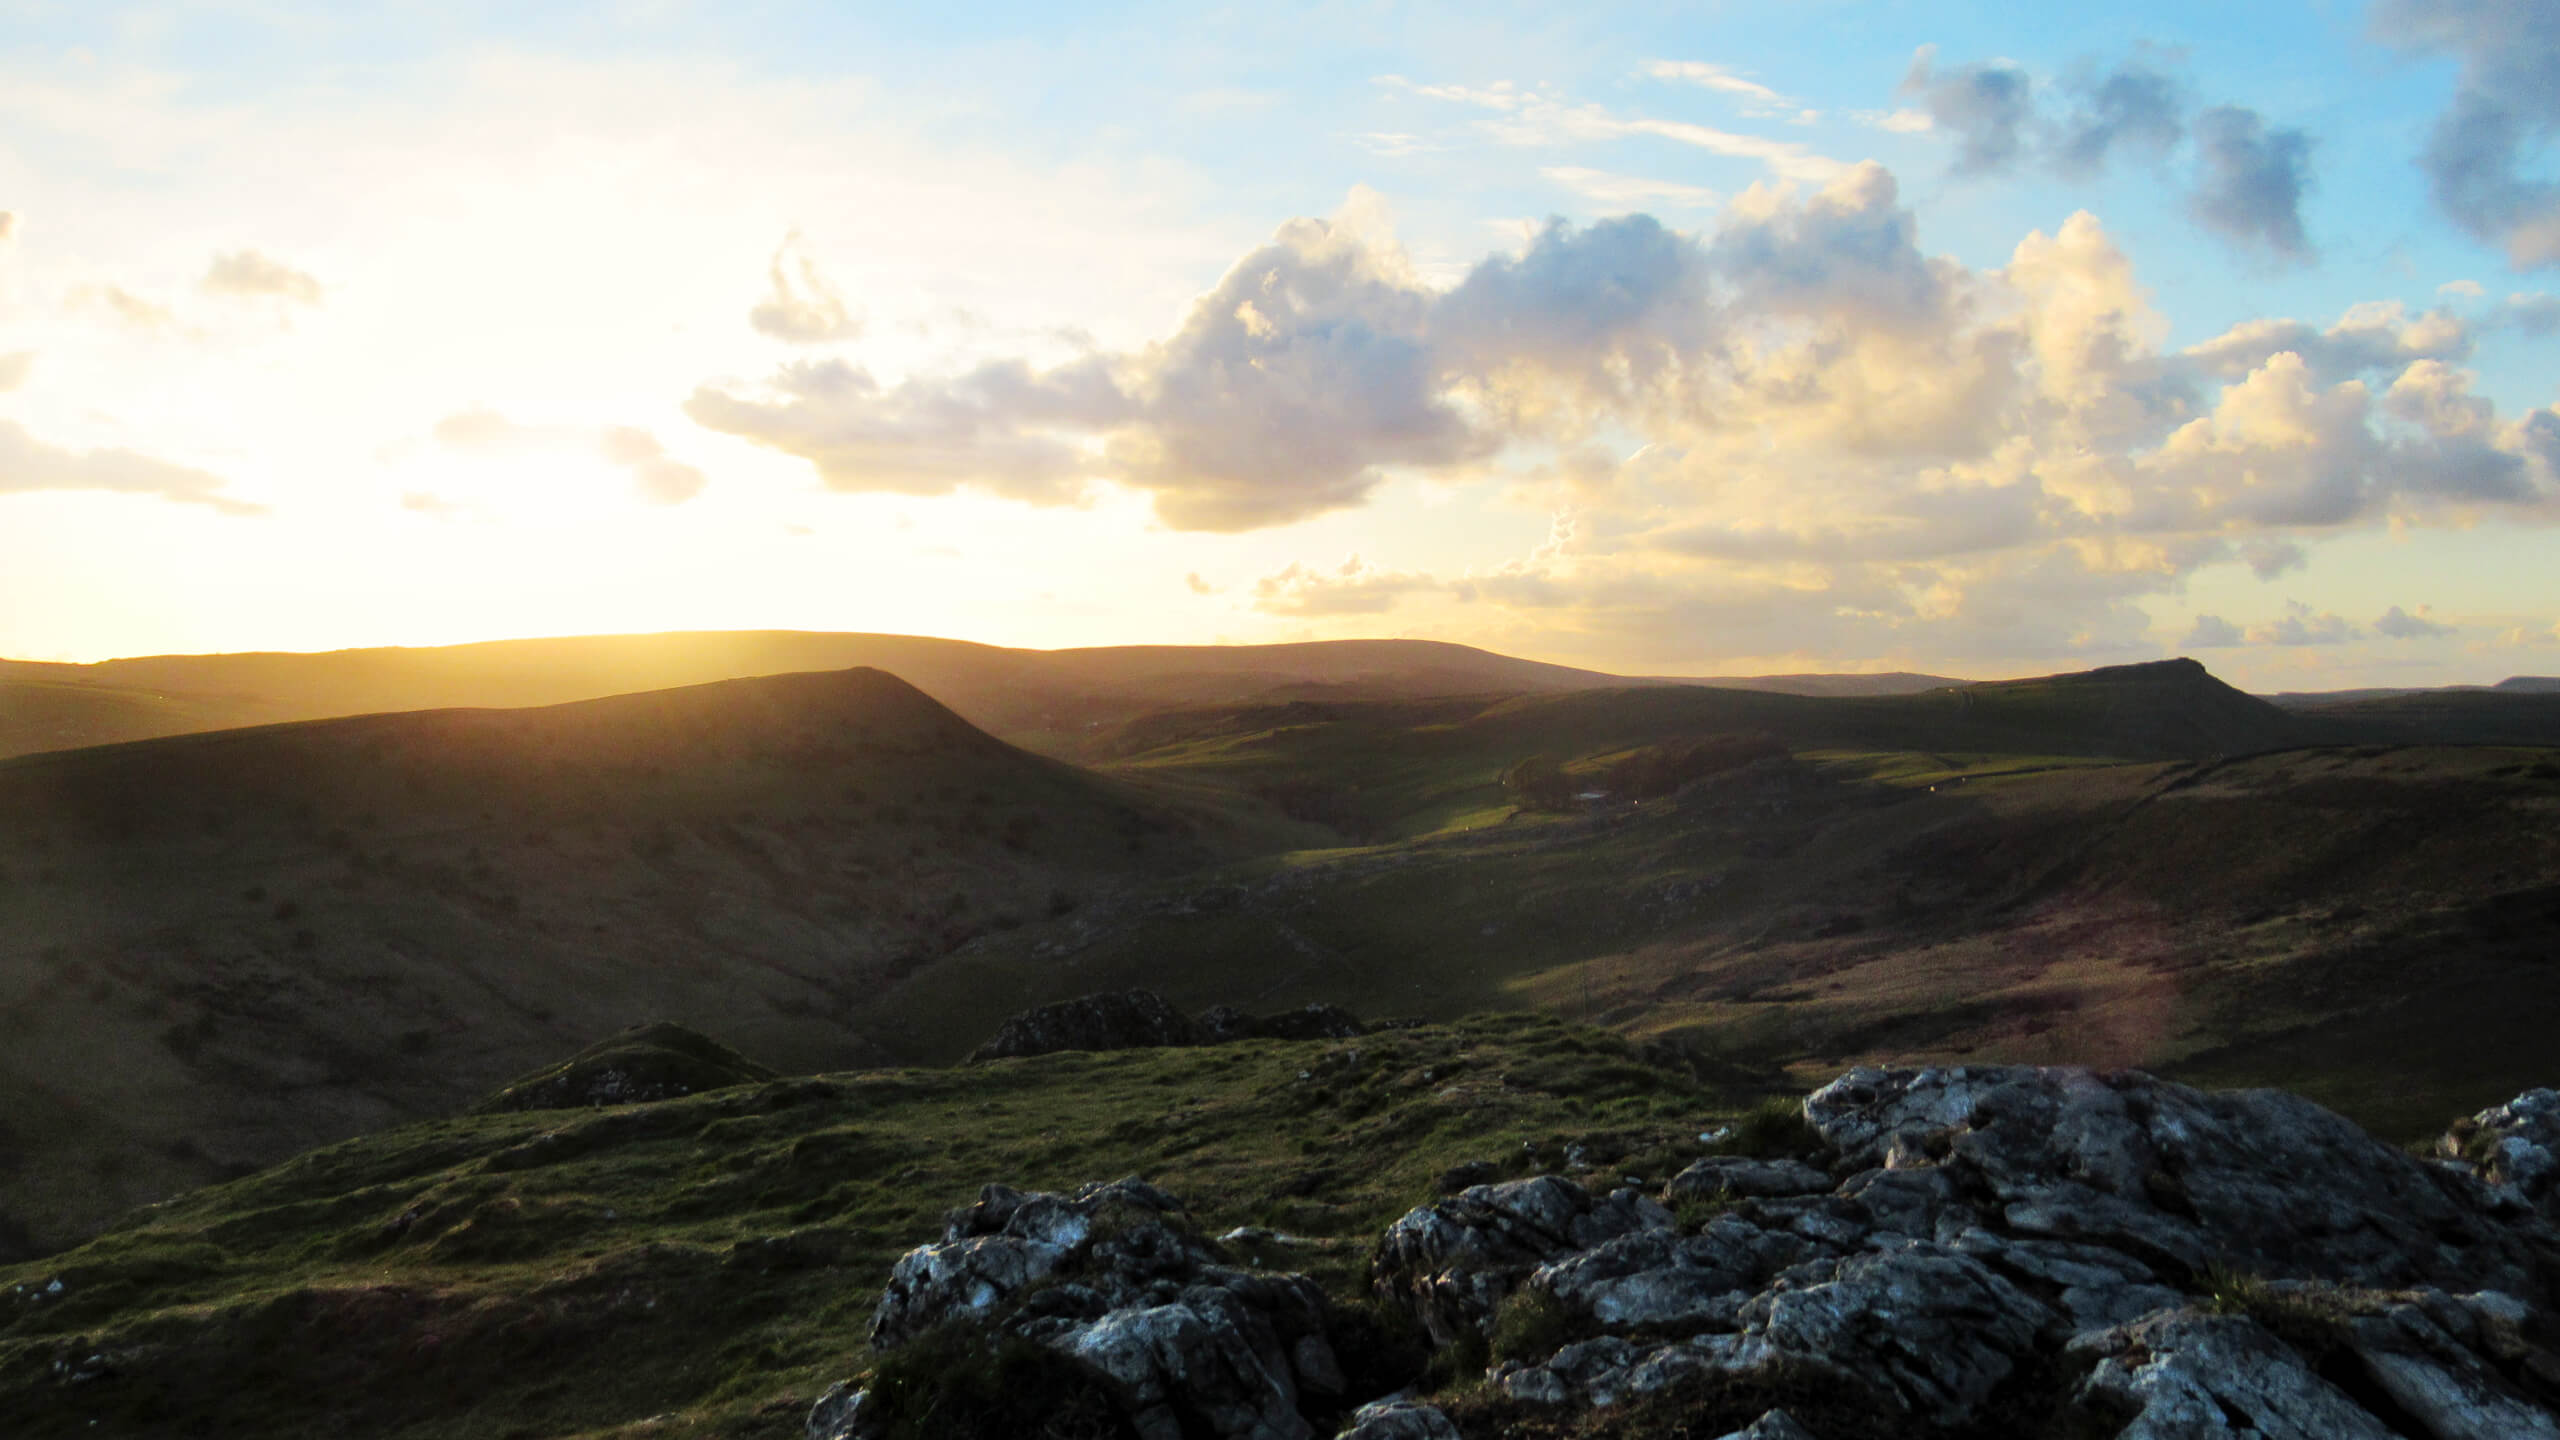 Chrome Hill Walk: 3 Routes to the Spectacular Summit Views